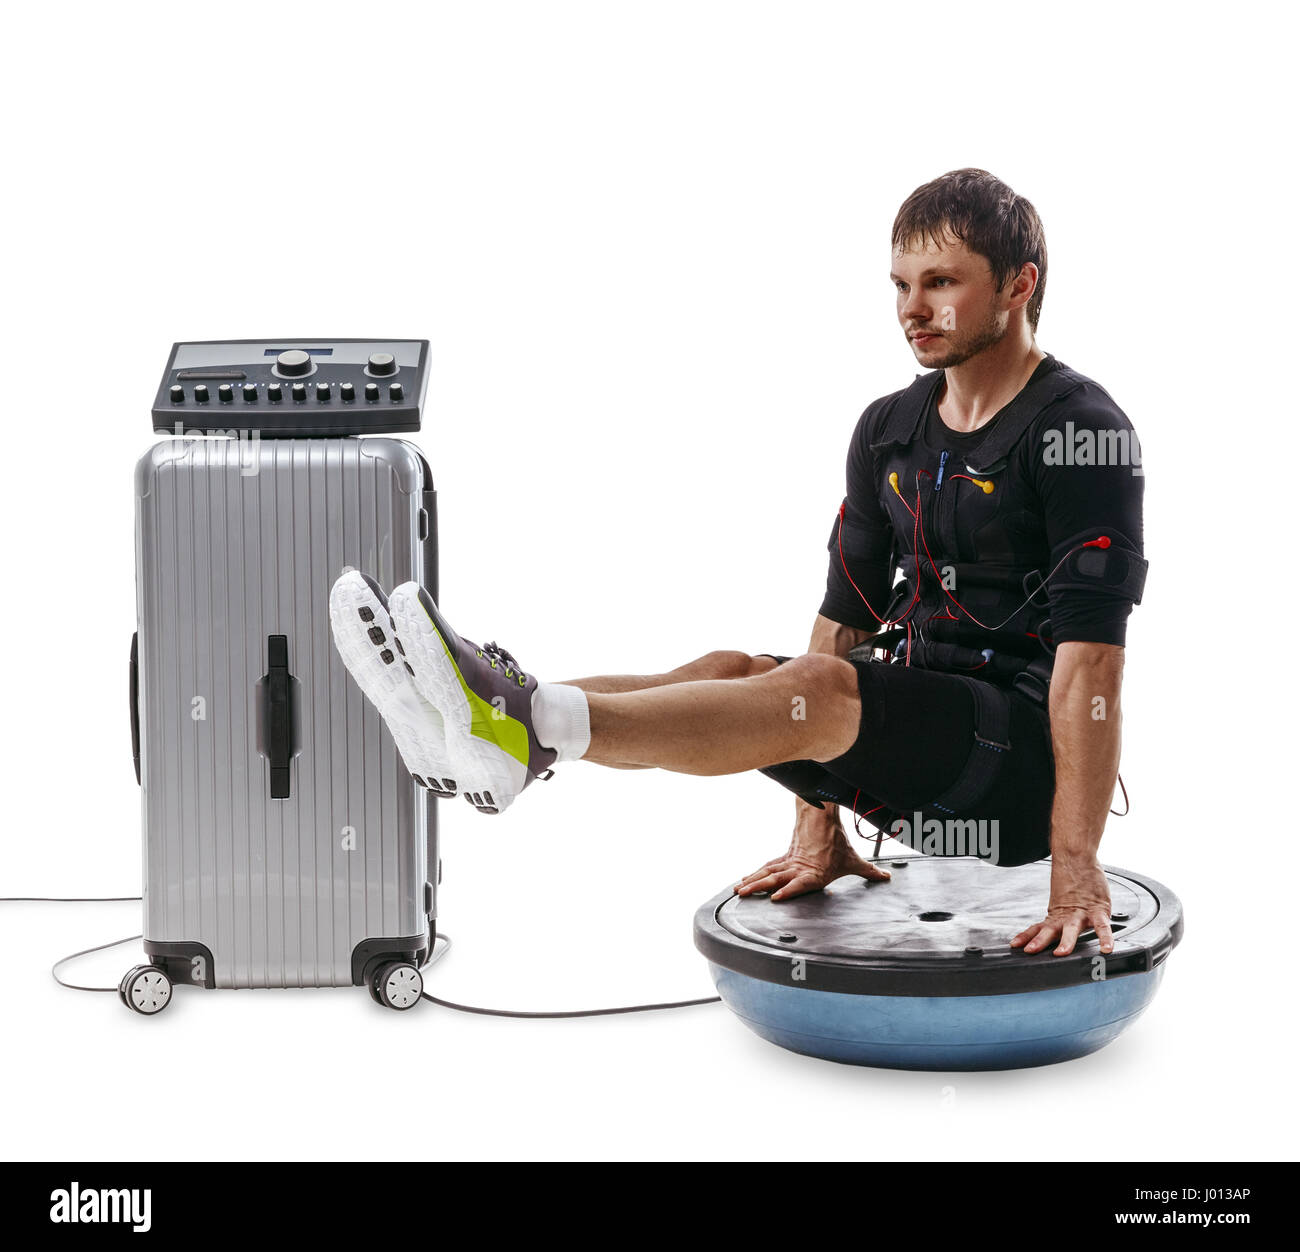 Bosu Ball Exercises For Athletes: Bosu Ball Stock Photos & Bosu Ball Stock Images